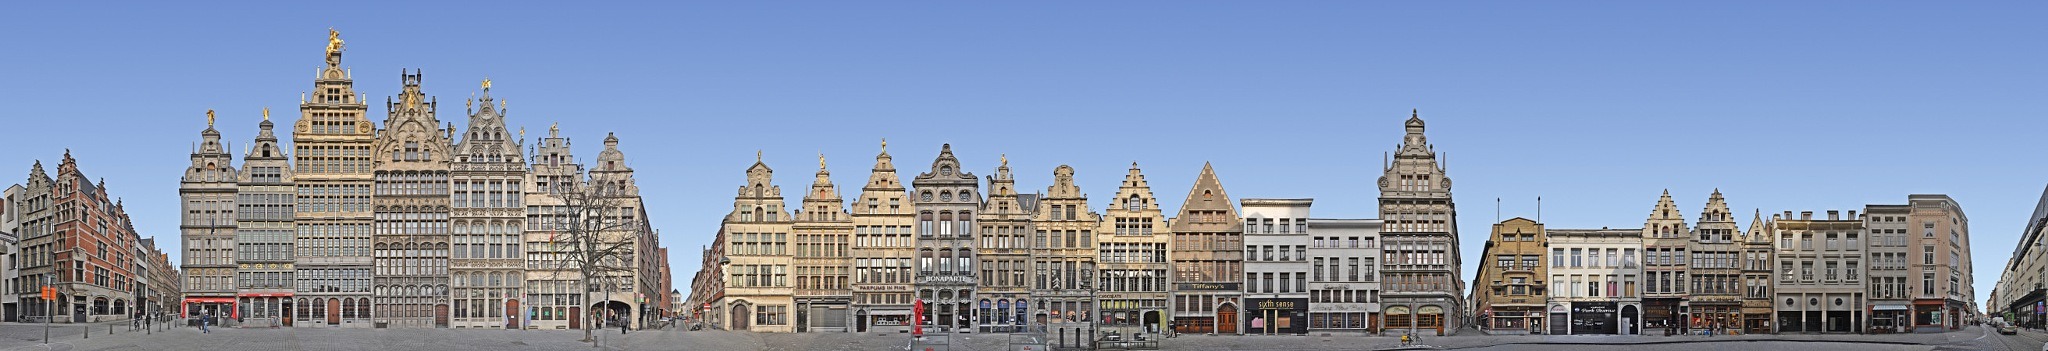 Antwerp   Grote Markt / Kaasrui Panorama by edition cityscape